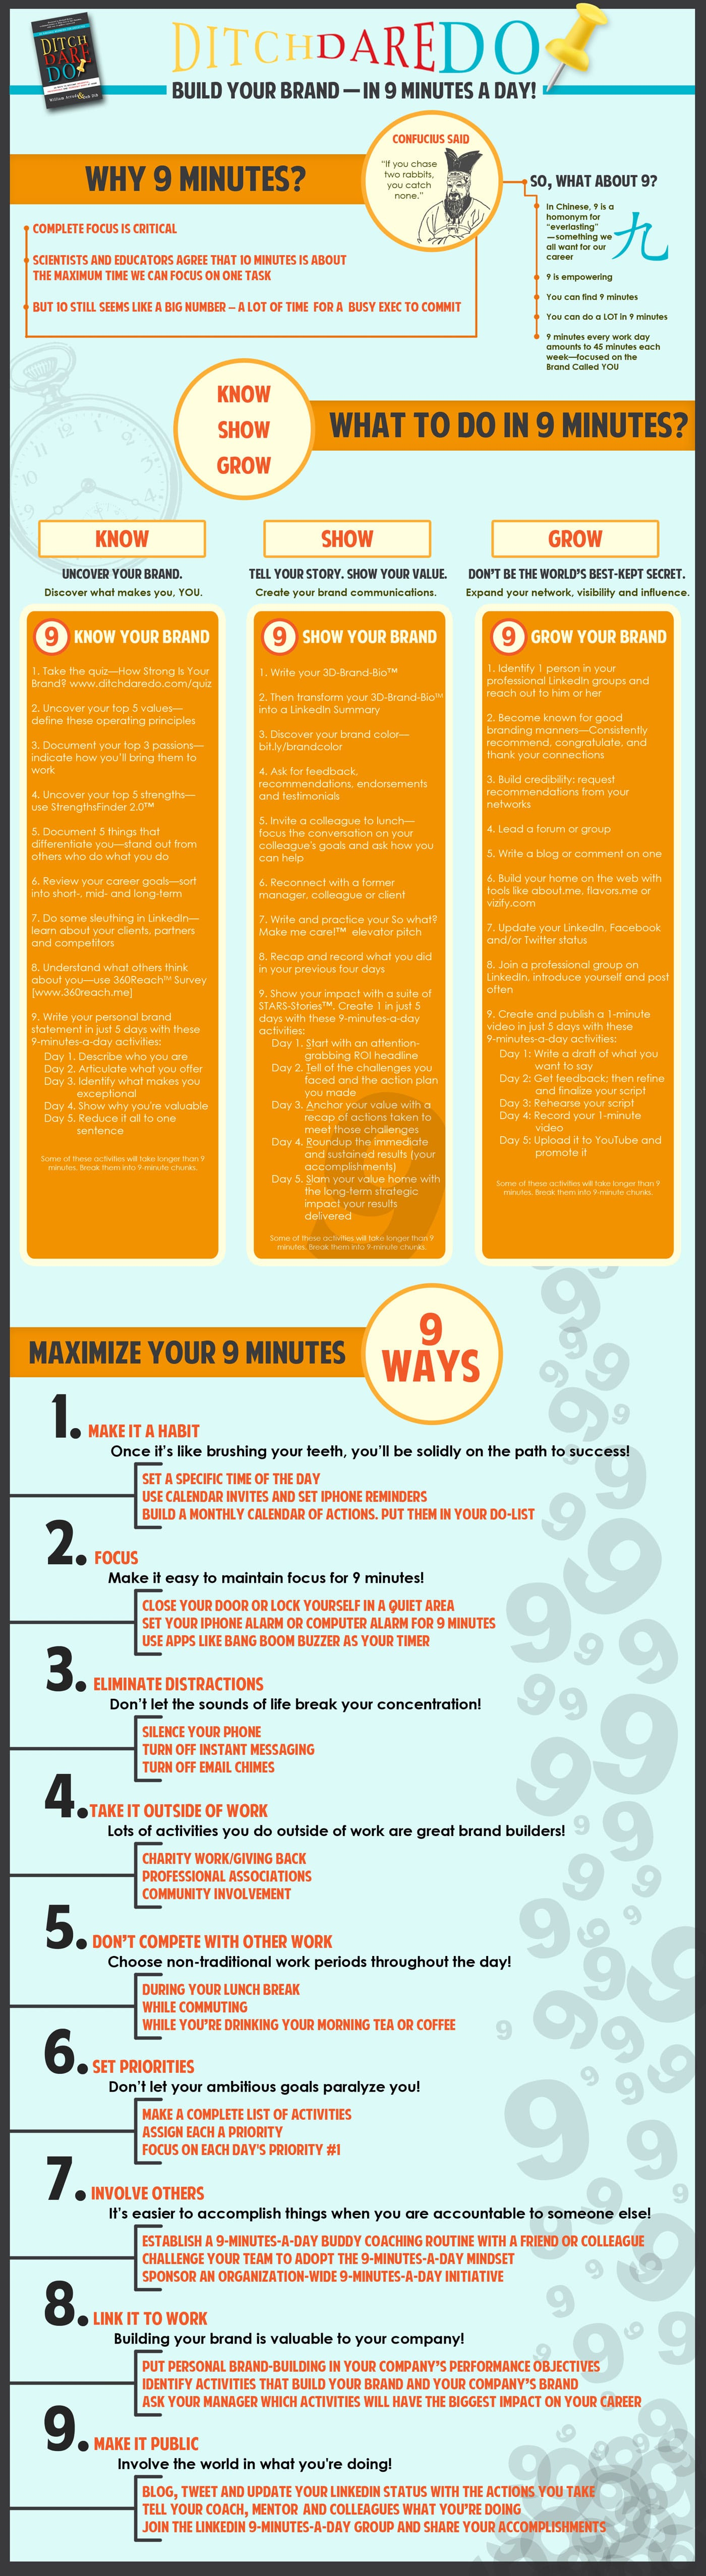 How To Build Your Personal Brand In 9 Minutes Each Day [Infographic]